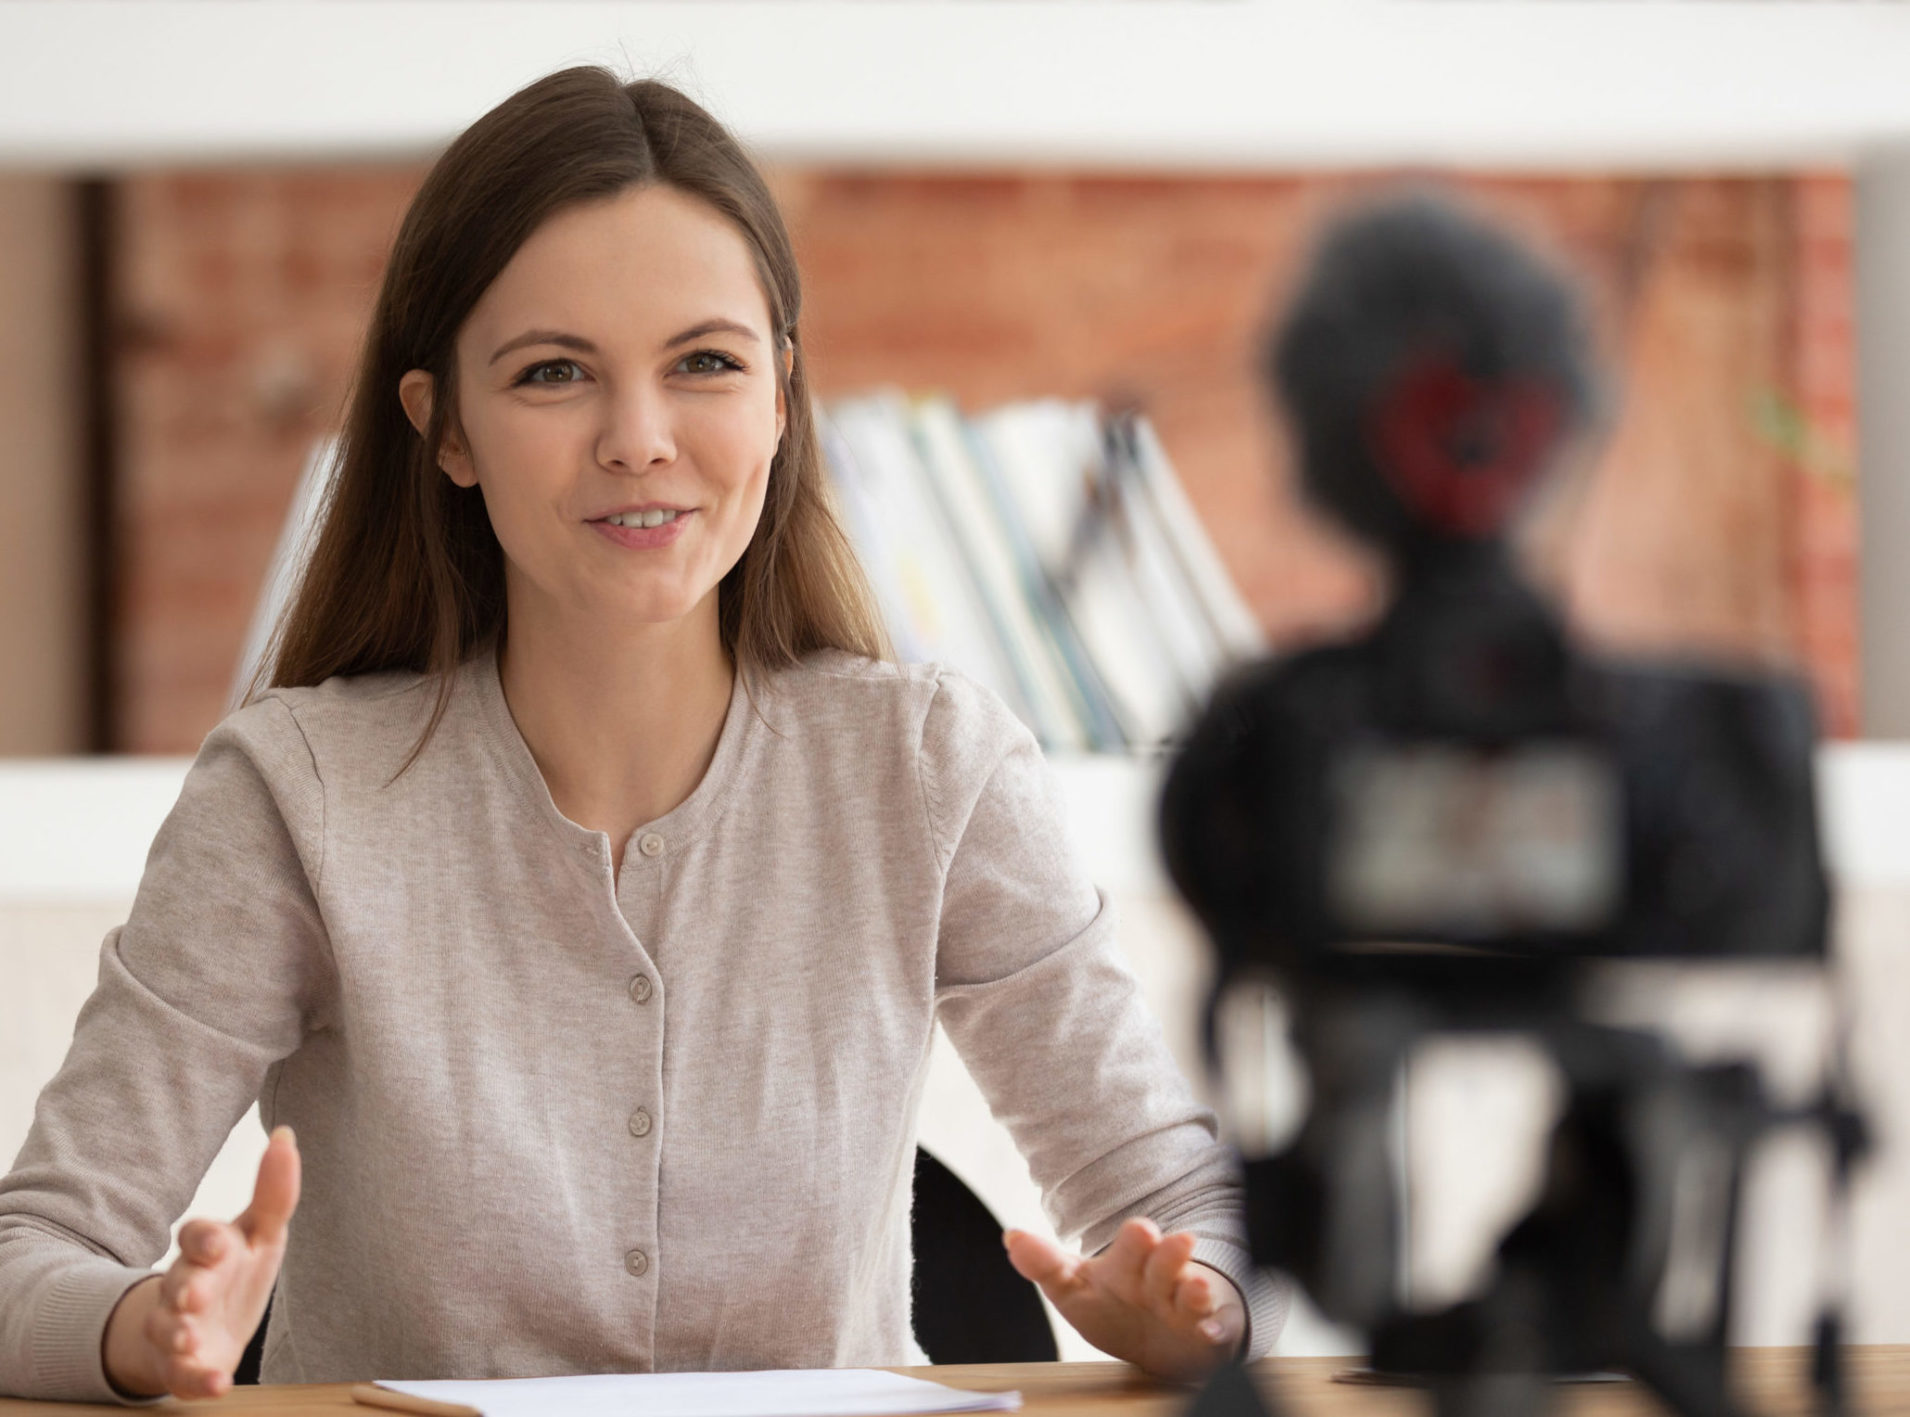 Smiling young female tutor or coach talk at professional camera shooting online training study course, positive motivated girl vlogger speak with viewers making video, record live vlog or tutorial